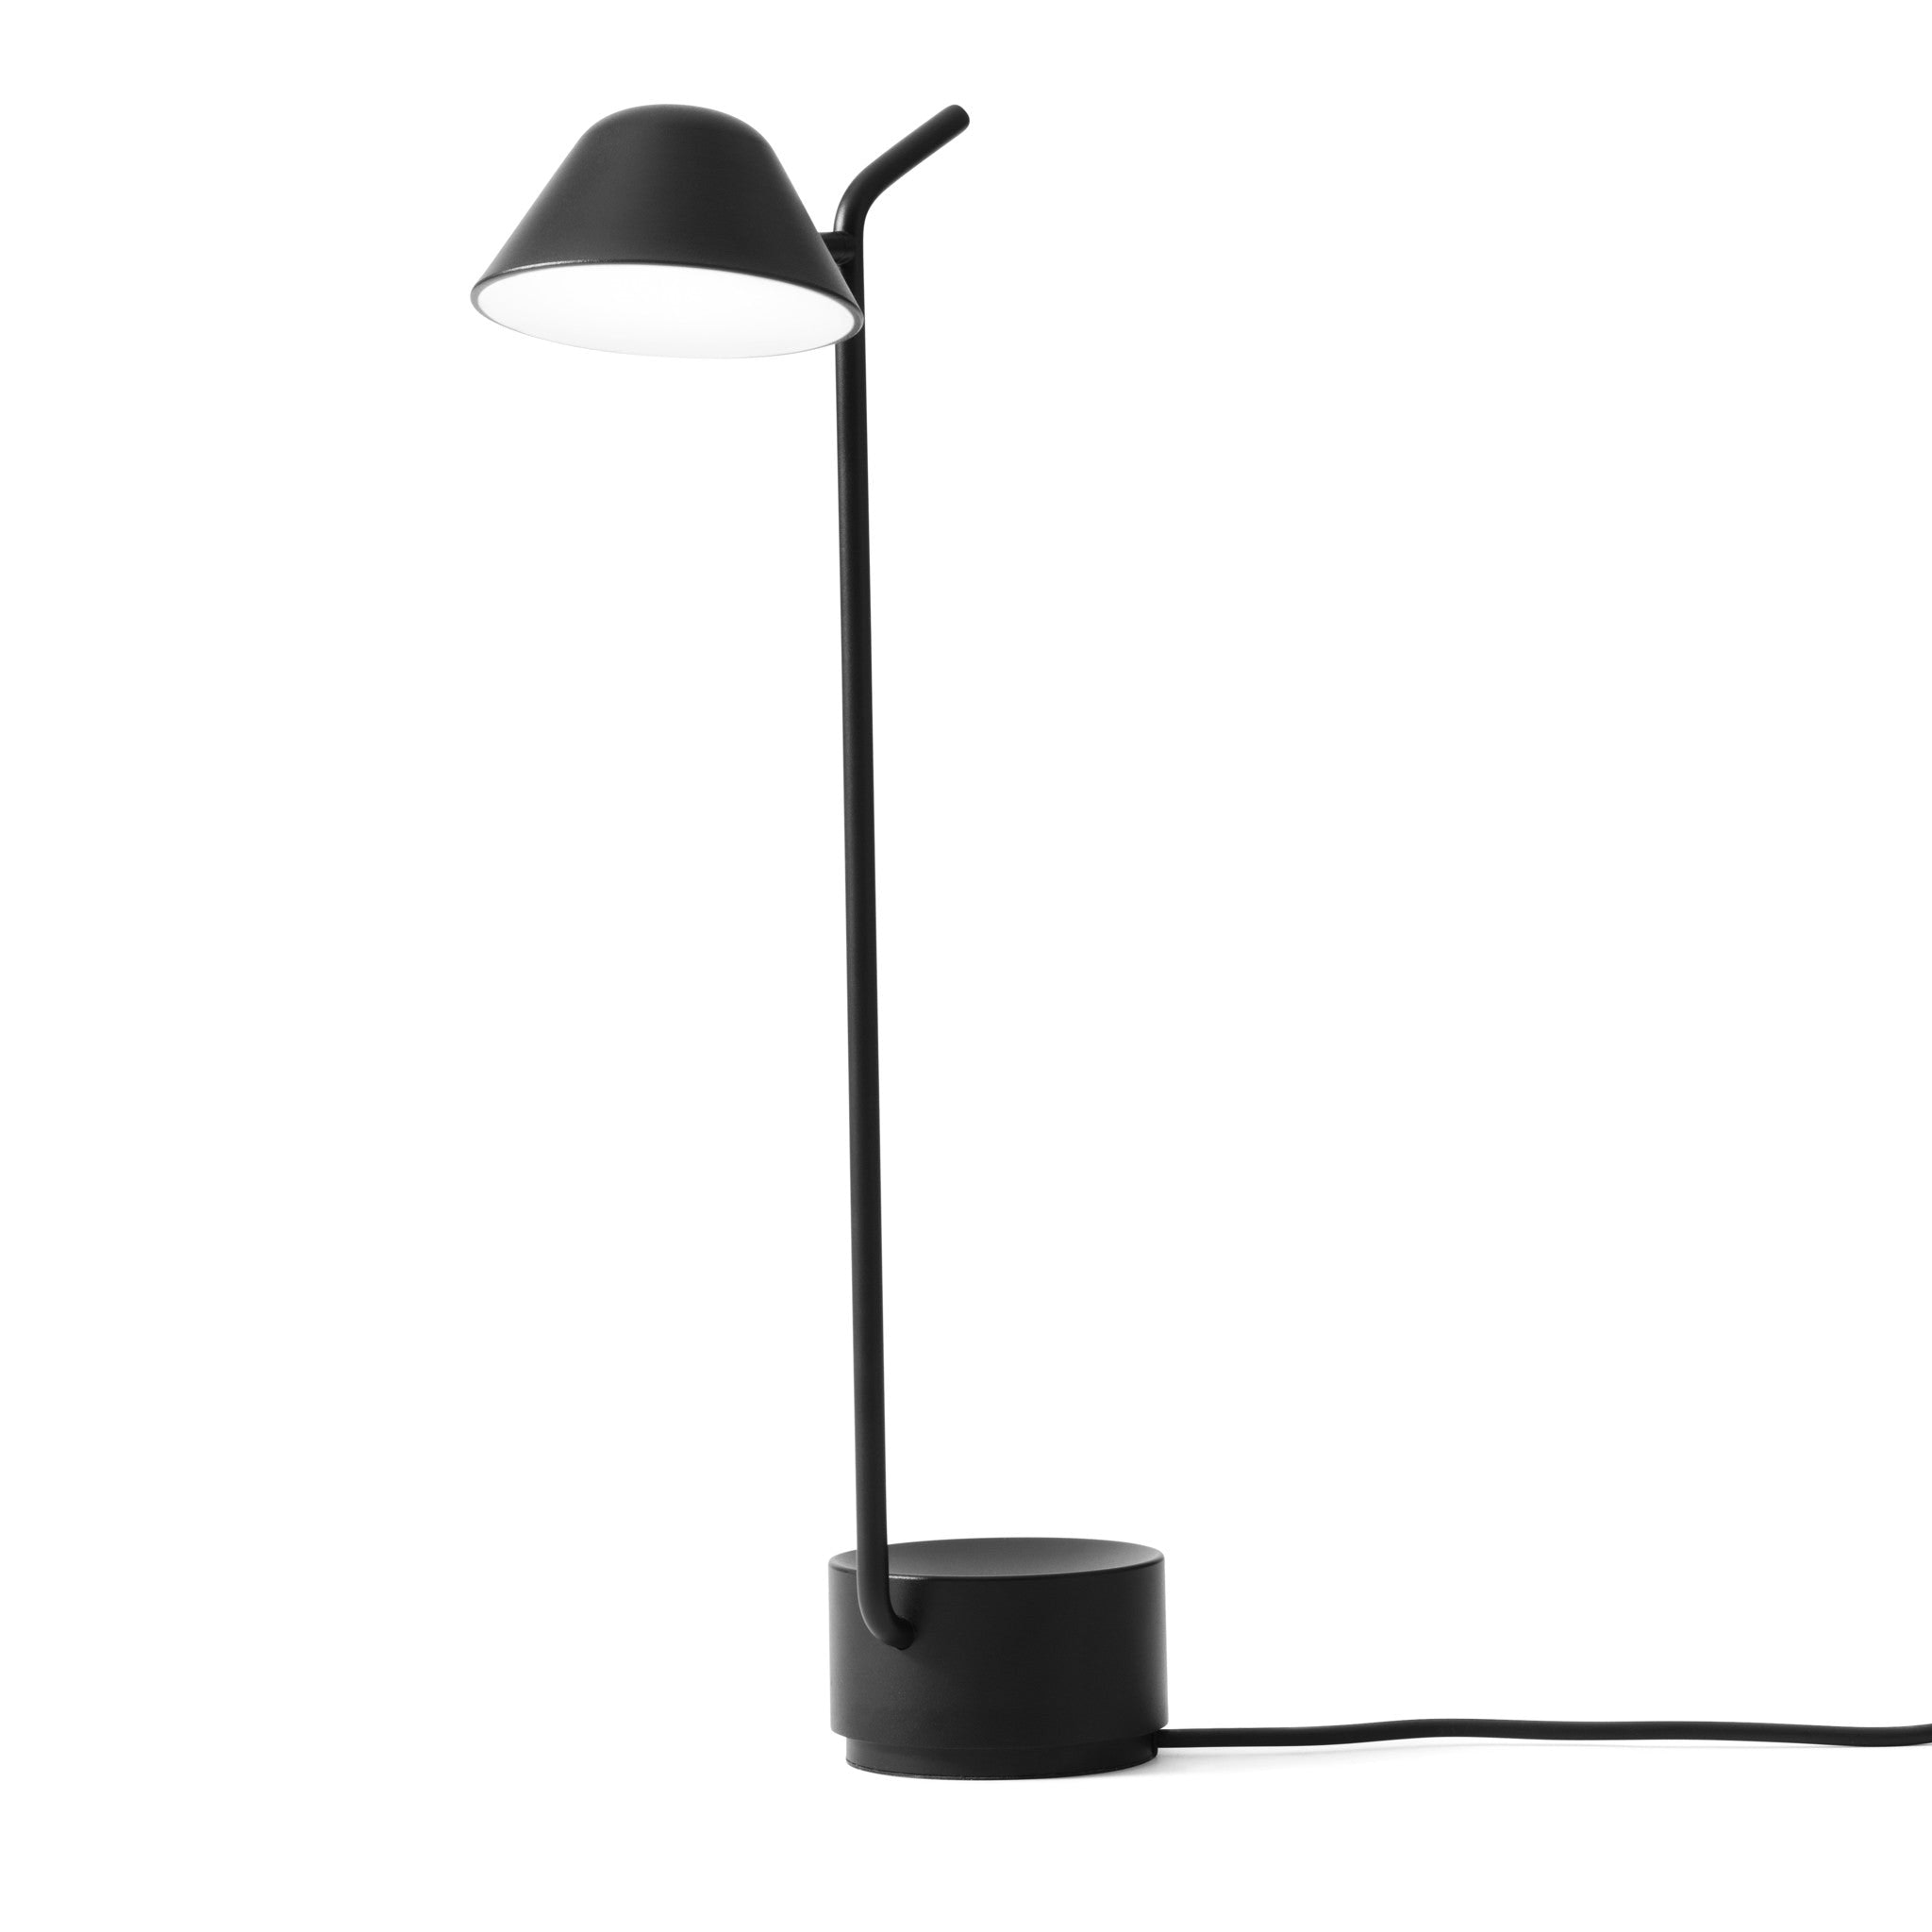 Peek Table Lamp by Jonas Wagell